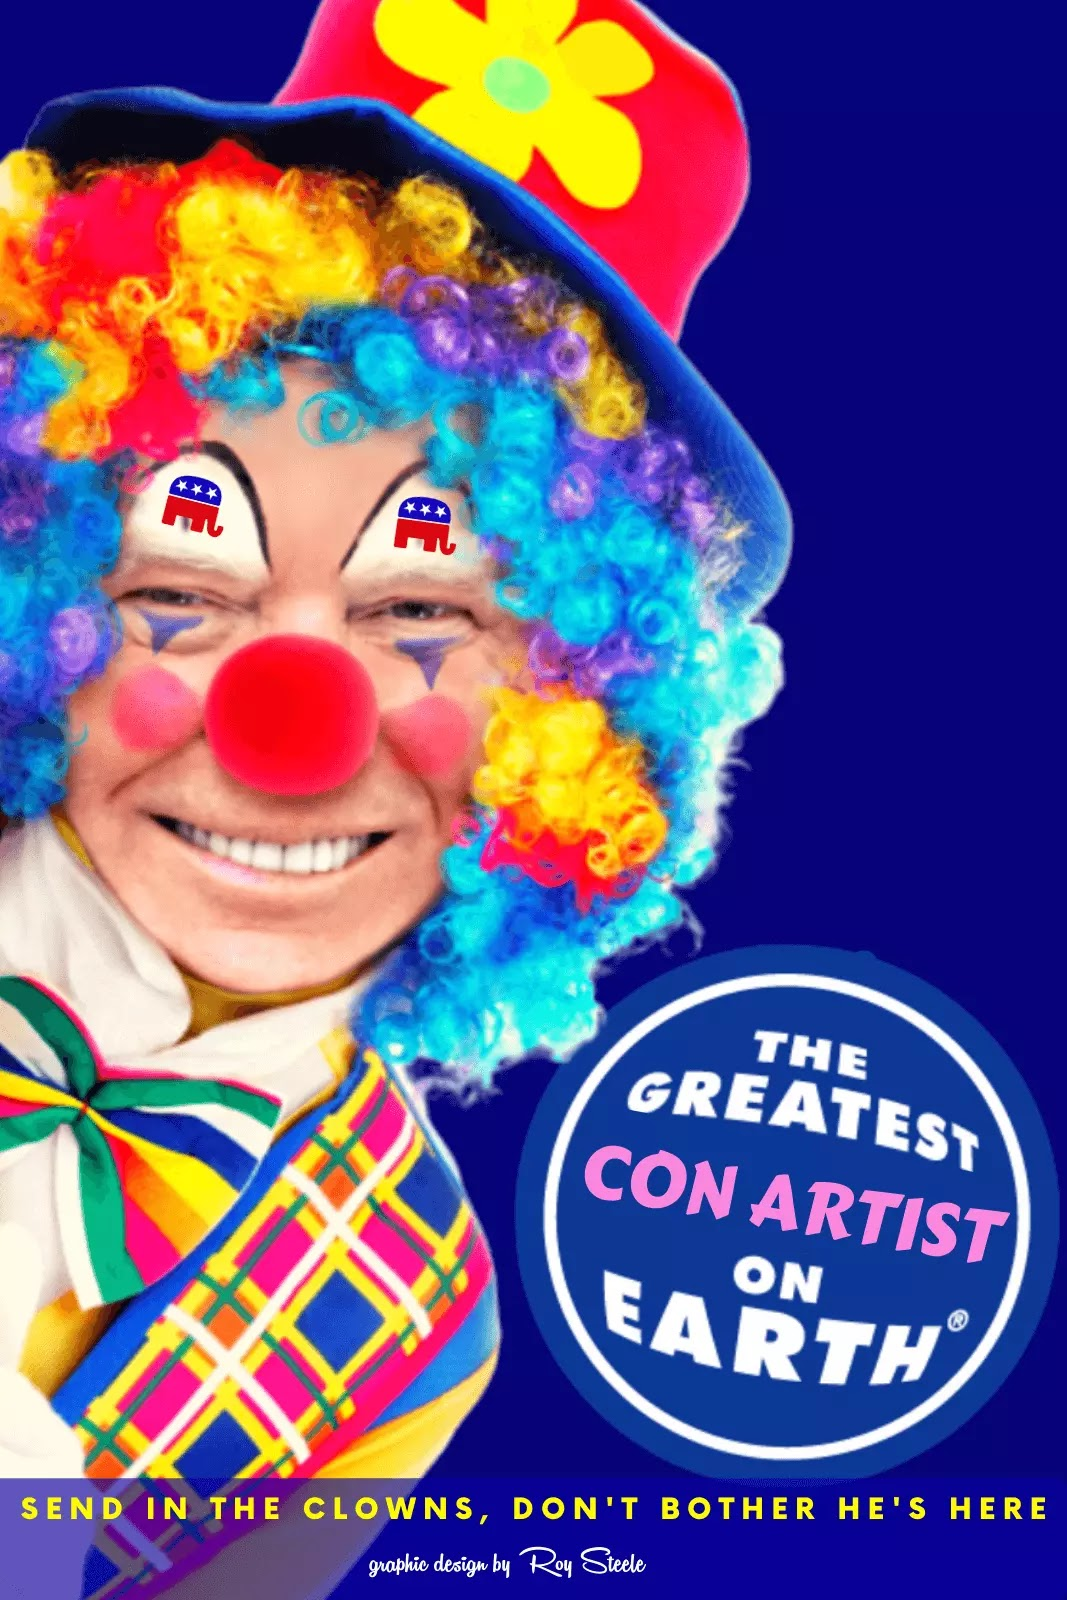 """Donald Trump in clown makeup and multi-colored wig, and the text """"Greatest Con Artist on Earth""""."""